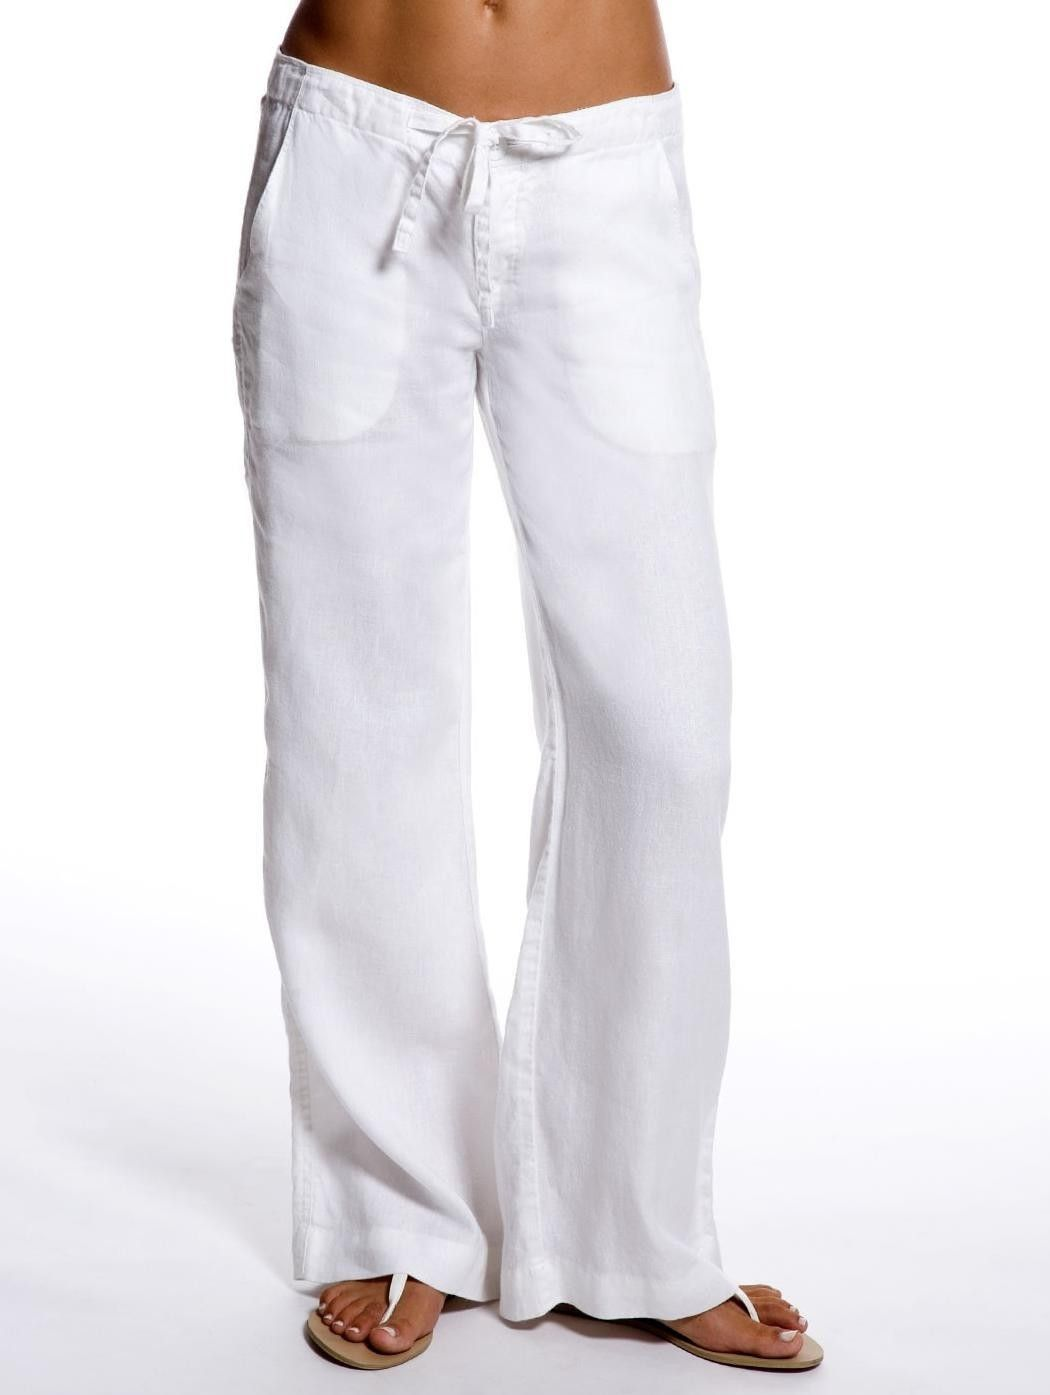 %linen white Next cropped trousers size 12, full lining, 2 pocket at side and 2 secret at the pack. New without tag. Comes from smoke and pet free home Thank.